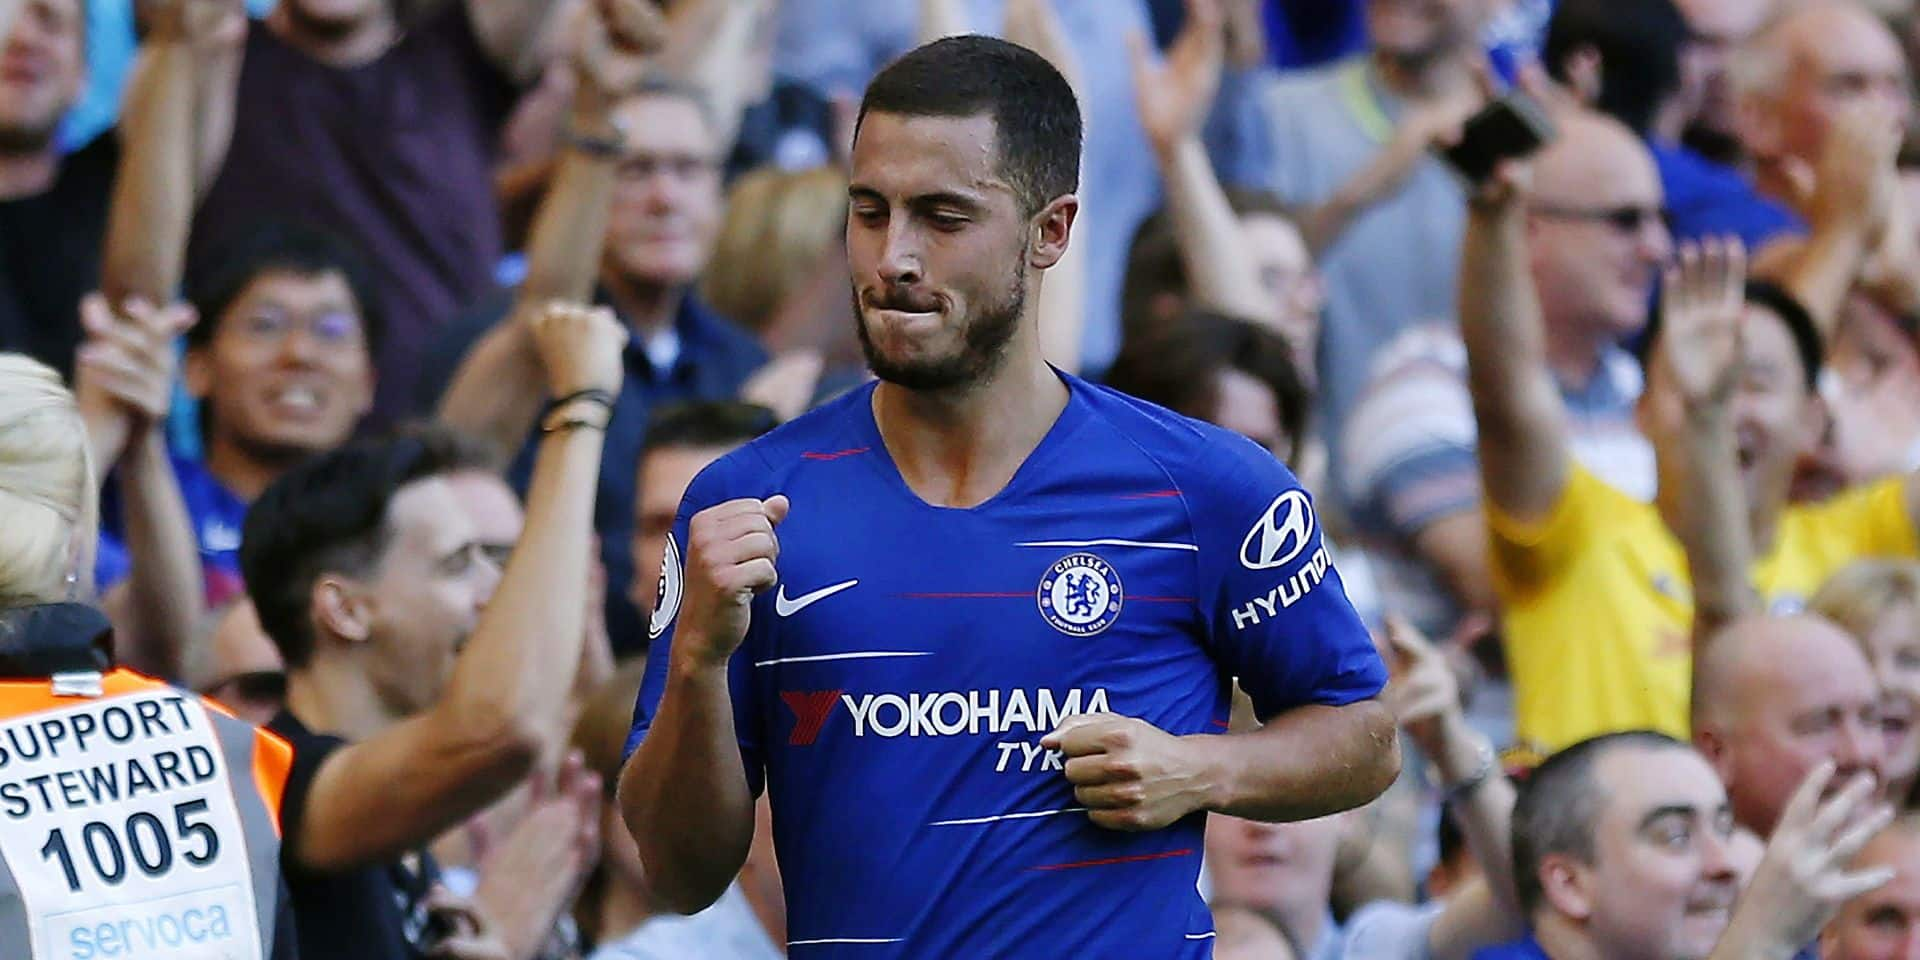 Chelsea's Belgian midfielder Eden Hazard celebrates after scoring their second goal during the English Premier League football match between Chelsea and Bournemouth at Stamford Bridge in London on September 1, 2018. (Photo by Ian KINGTON / AFP) / RESTRICTED TO EDITORIAL USE. No use with unauthorized audio, video, data, fixture lists, club/league logos or 'live' services. Online in-match use limited to 120 images. An additional 40 images may be used in extra time. No video emulation. Social media in-match use limited to 120 images. An additional 40 images may be used in extra time. No use in betting publications, games or single club/league/player publications. /